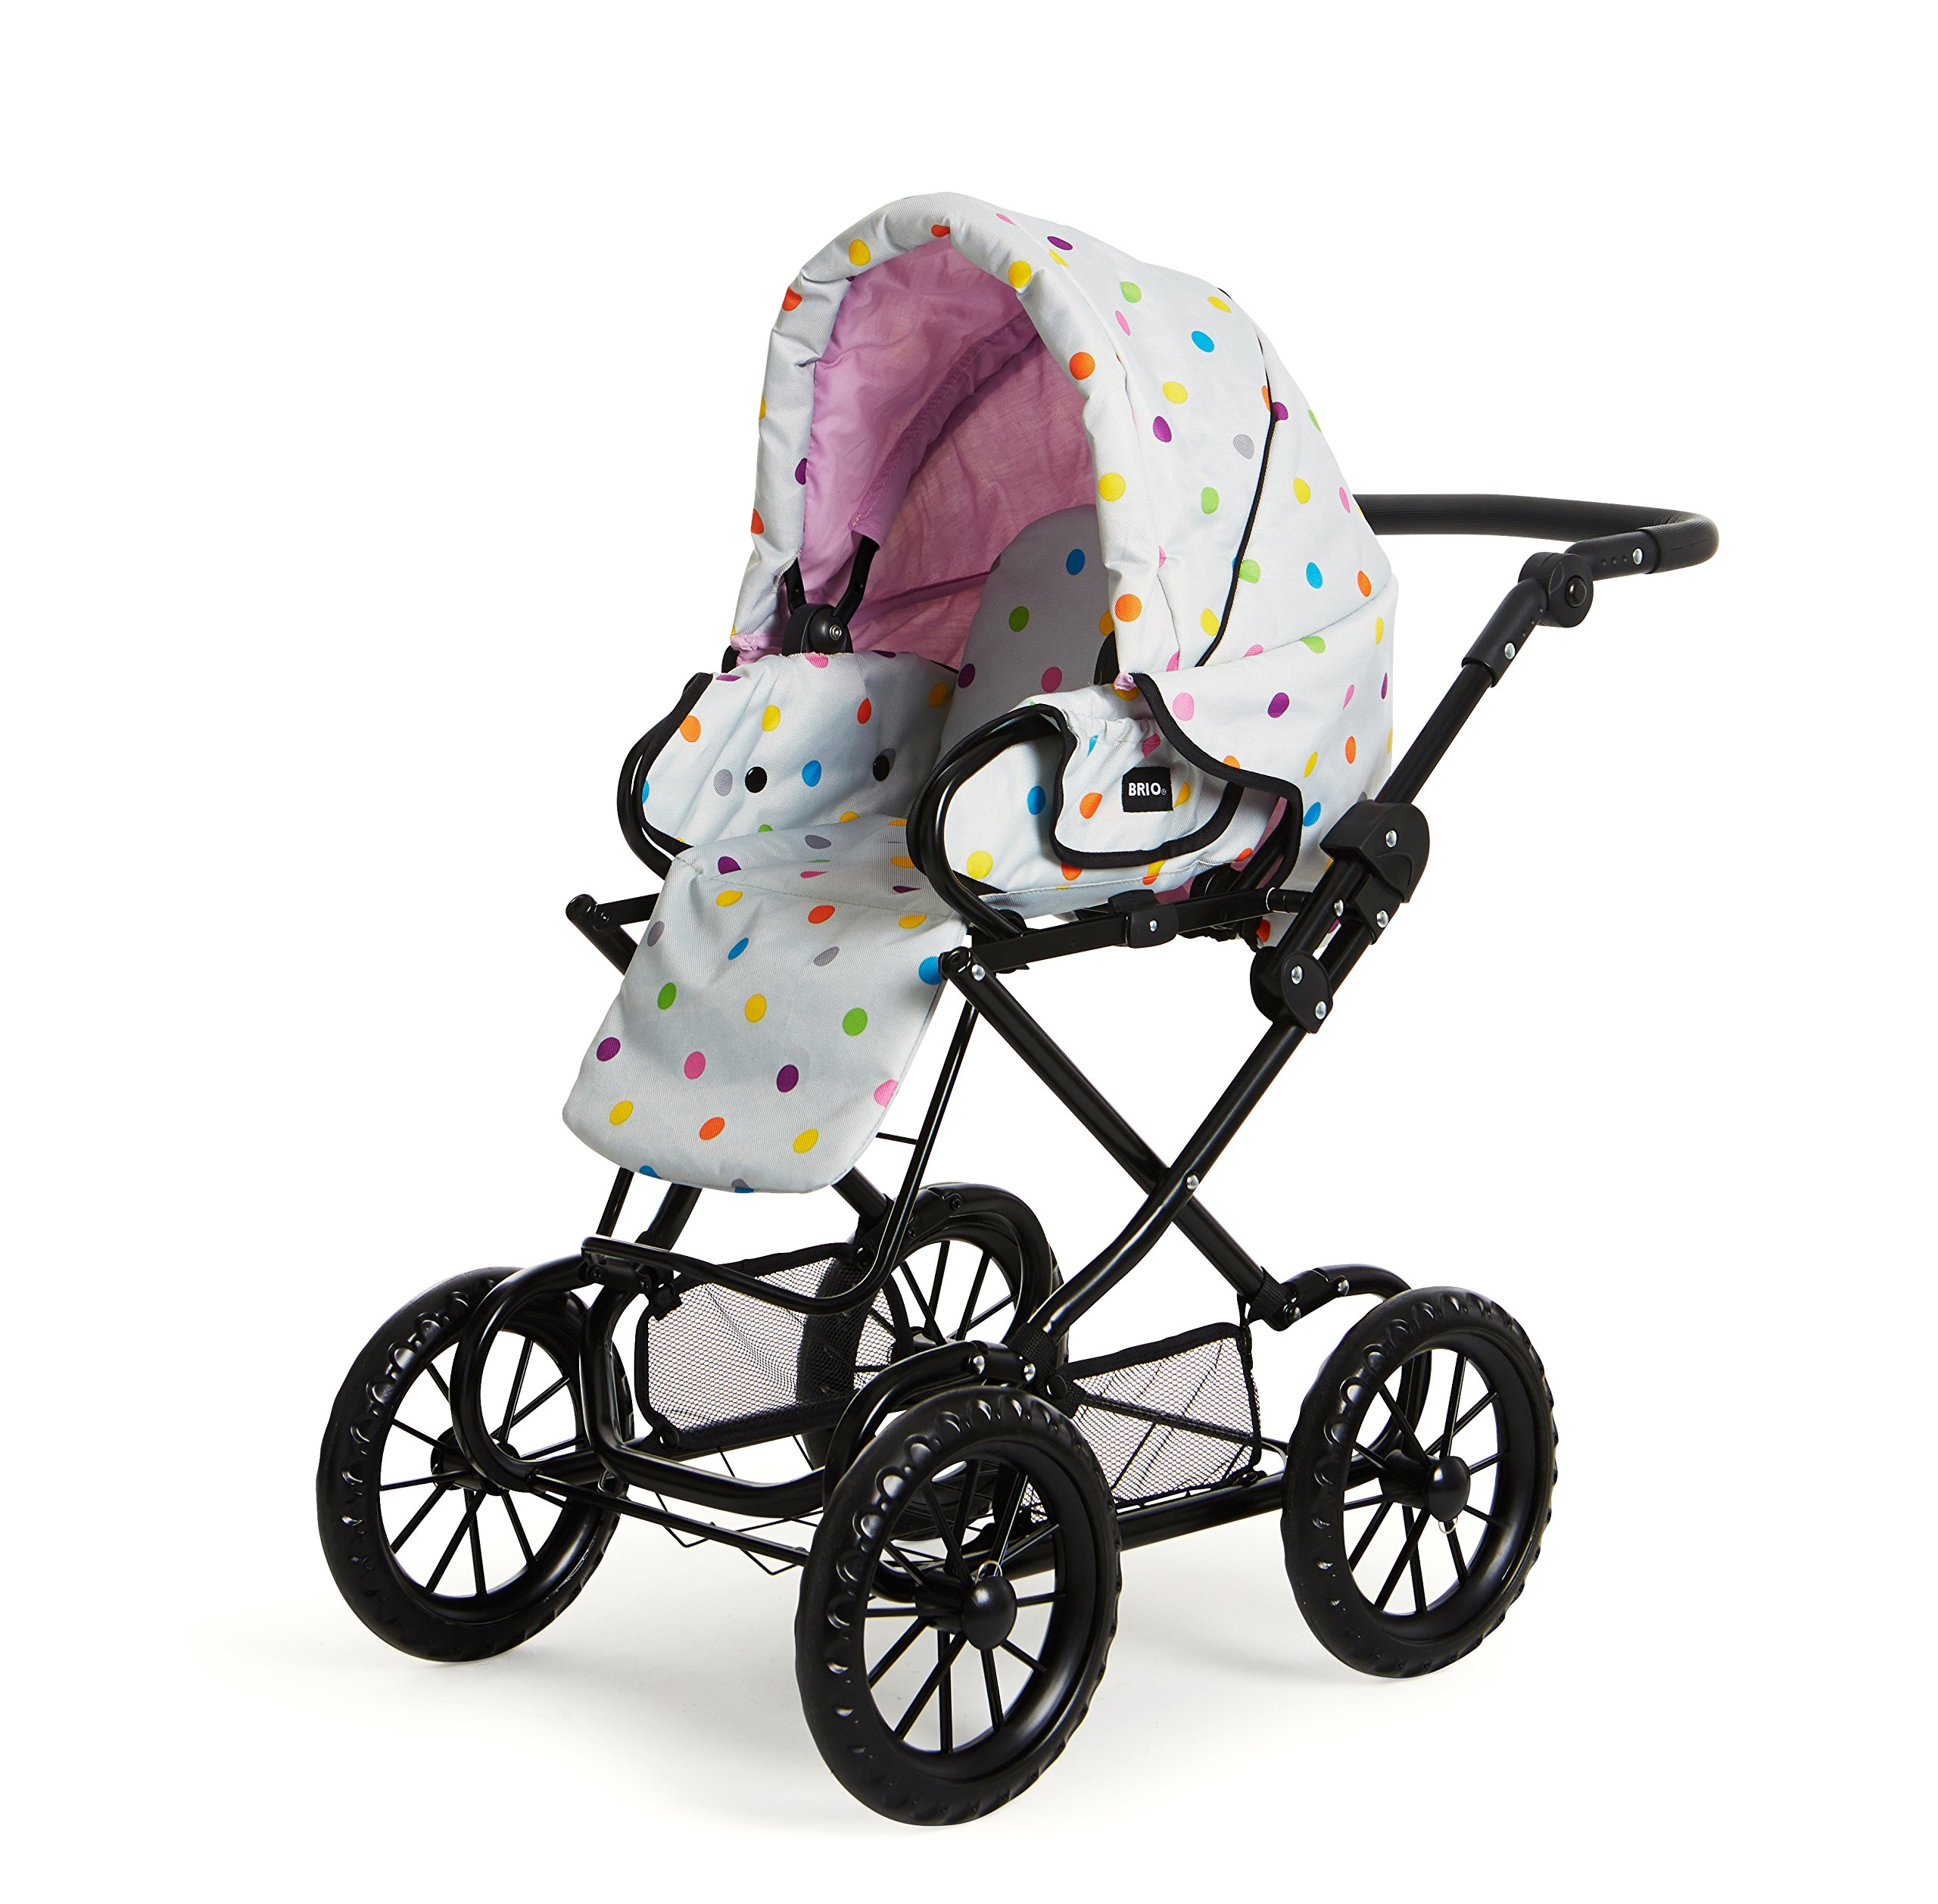 POPPENWAGEN COMBI GRIJS MET ST Ravensburger Combi Doll's Pram in a new design with multi-coloured dots With removable carry bag With adjustable push handle from 44to 79cm 4